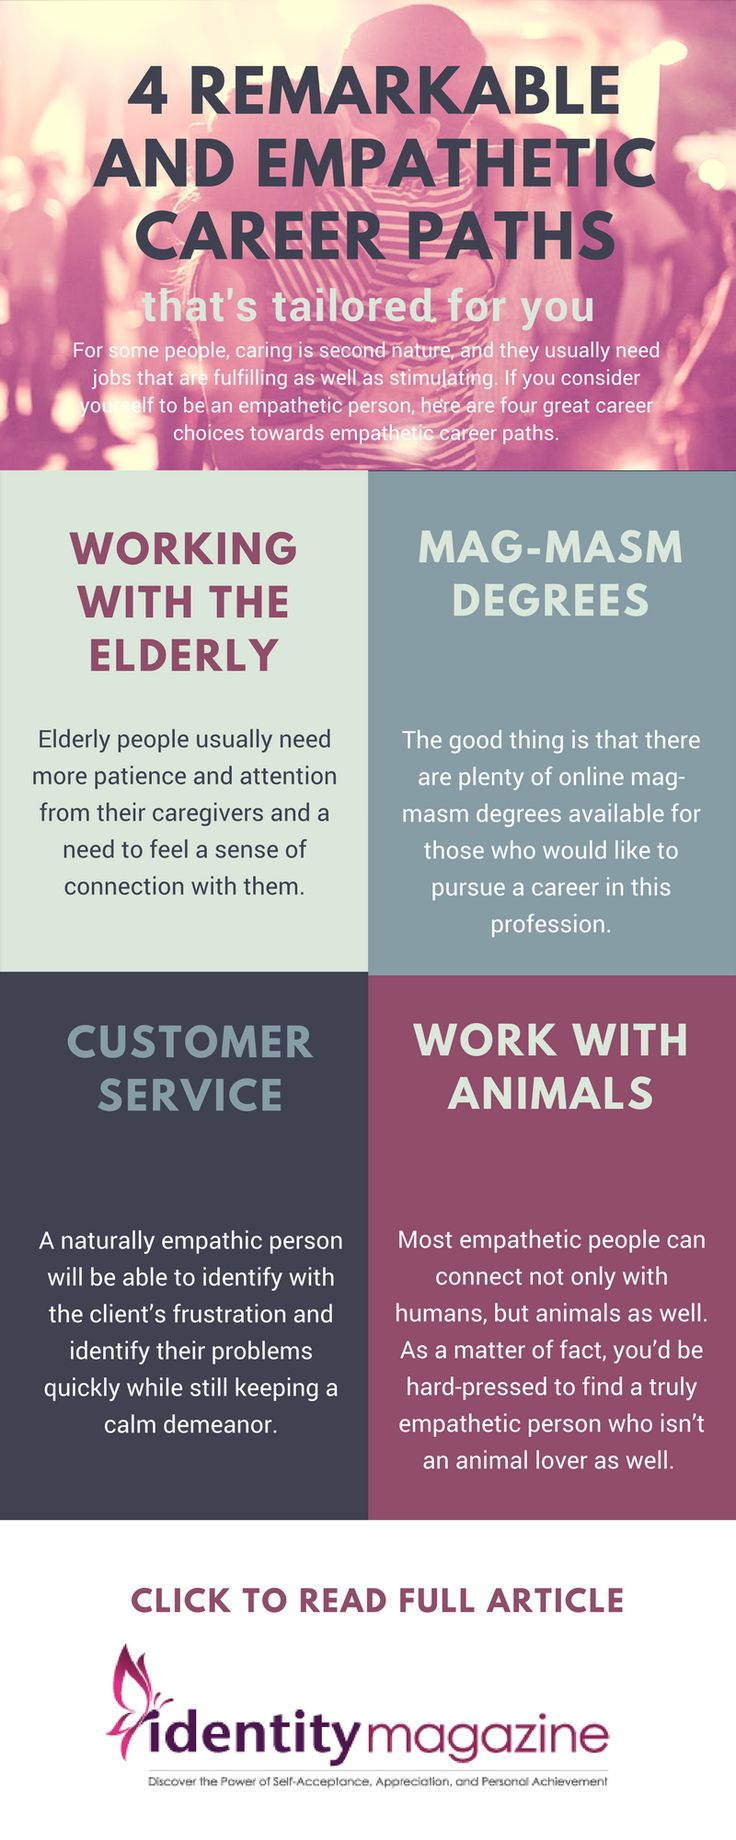 The vast majority of jobs require that people have good interpersonal skills, but there are jobs out there that are specifically tailored for people who have a naturally empathic personality. Here are 4 remarkable career paths to choose from.. #career #achievements #careerpath #choosingacareer #emphathic #careeradvice #canvaphoto #tips #article #IdentityMagazine #findtherightjobforyou #careeropportunity